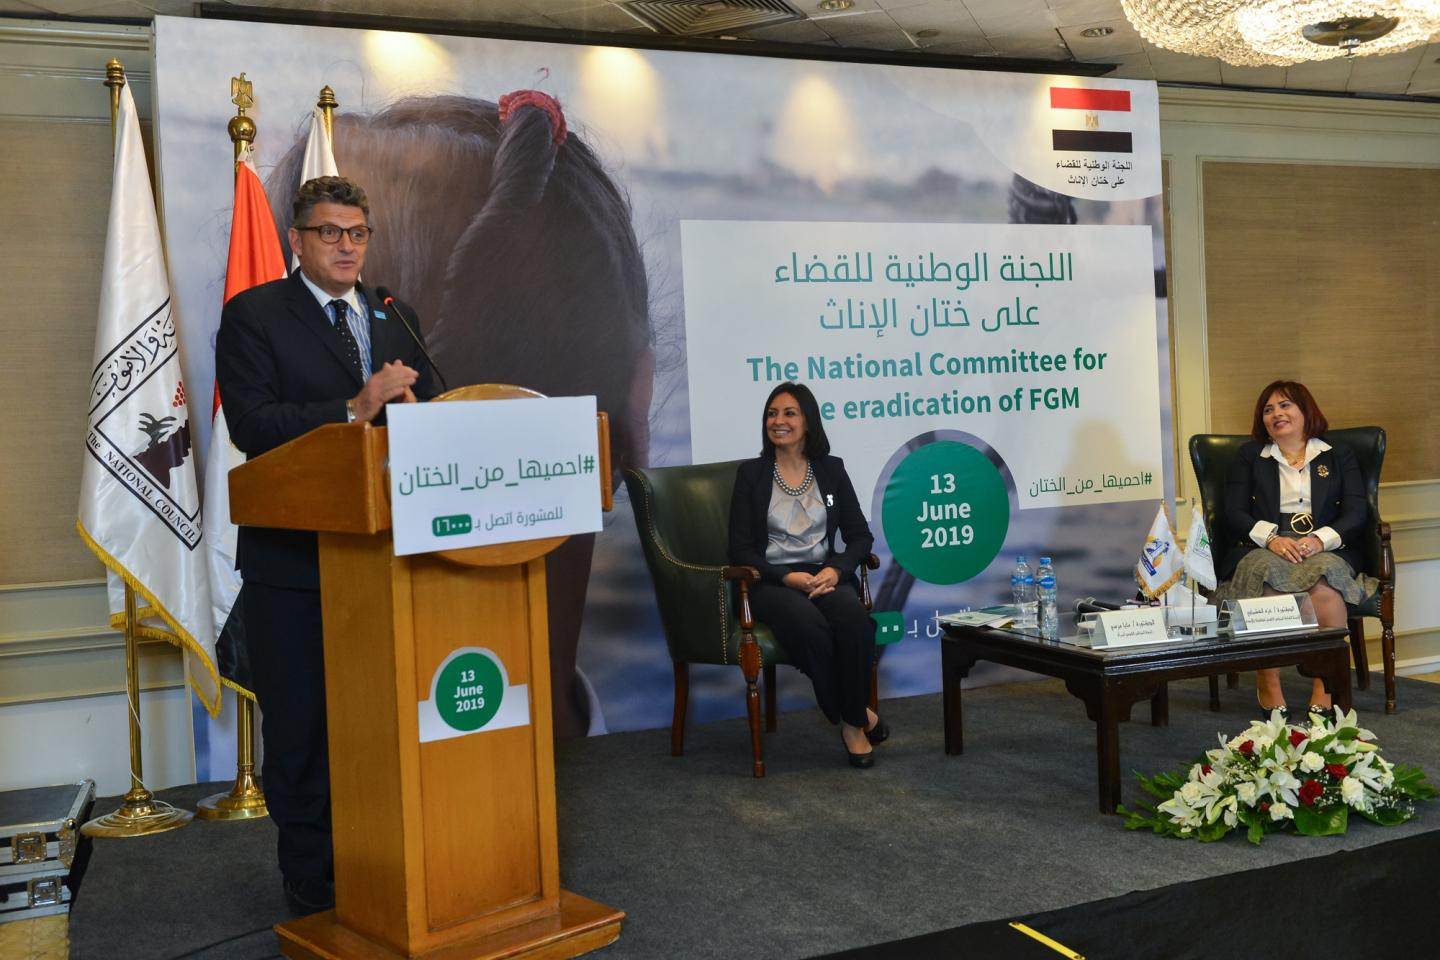 Launch of Egypt's National Committee on the Eradication of Female Genital Mutilation